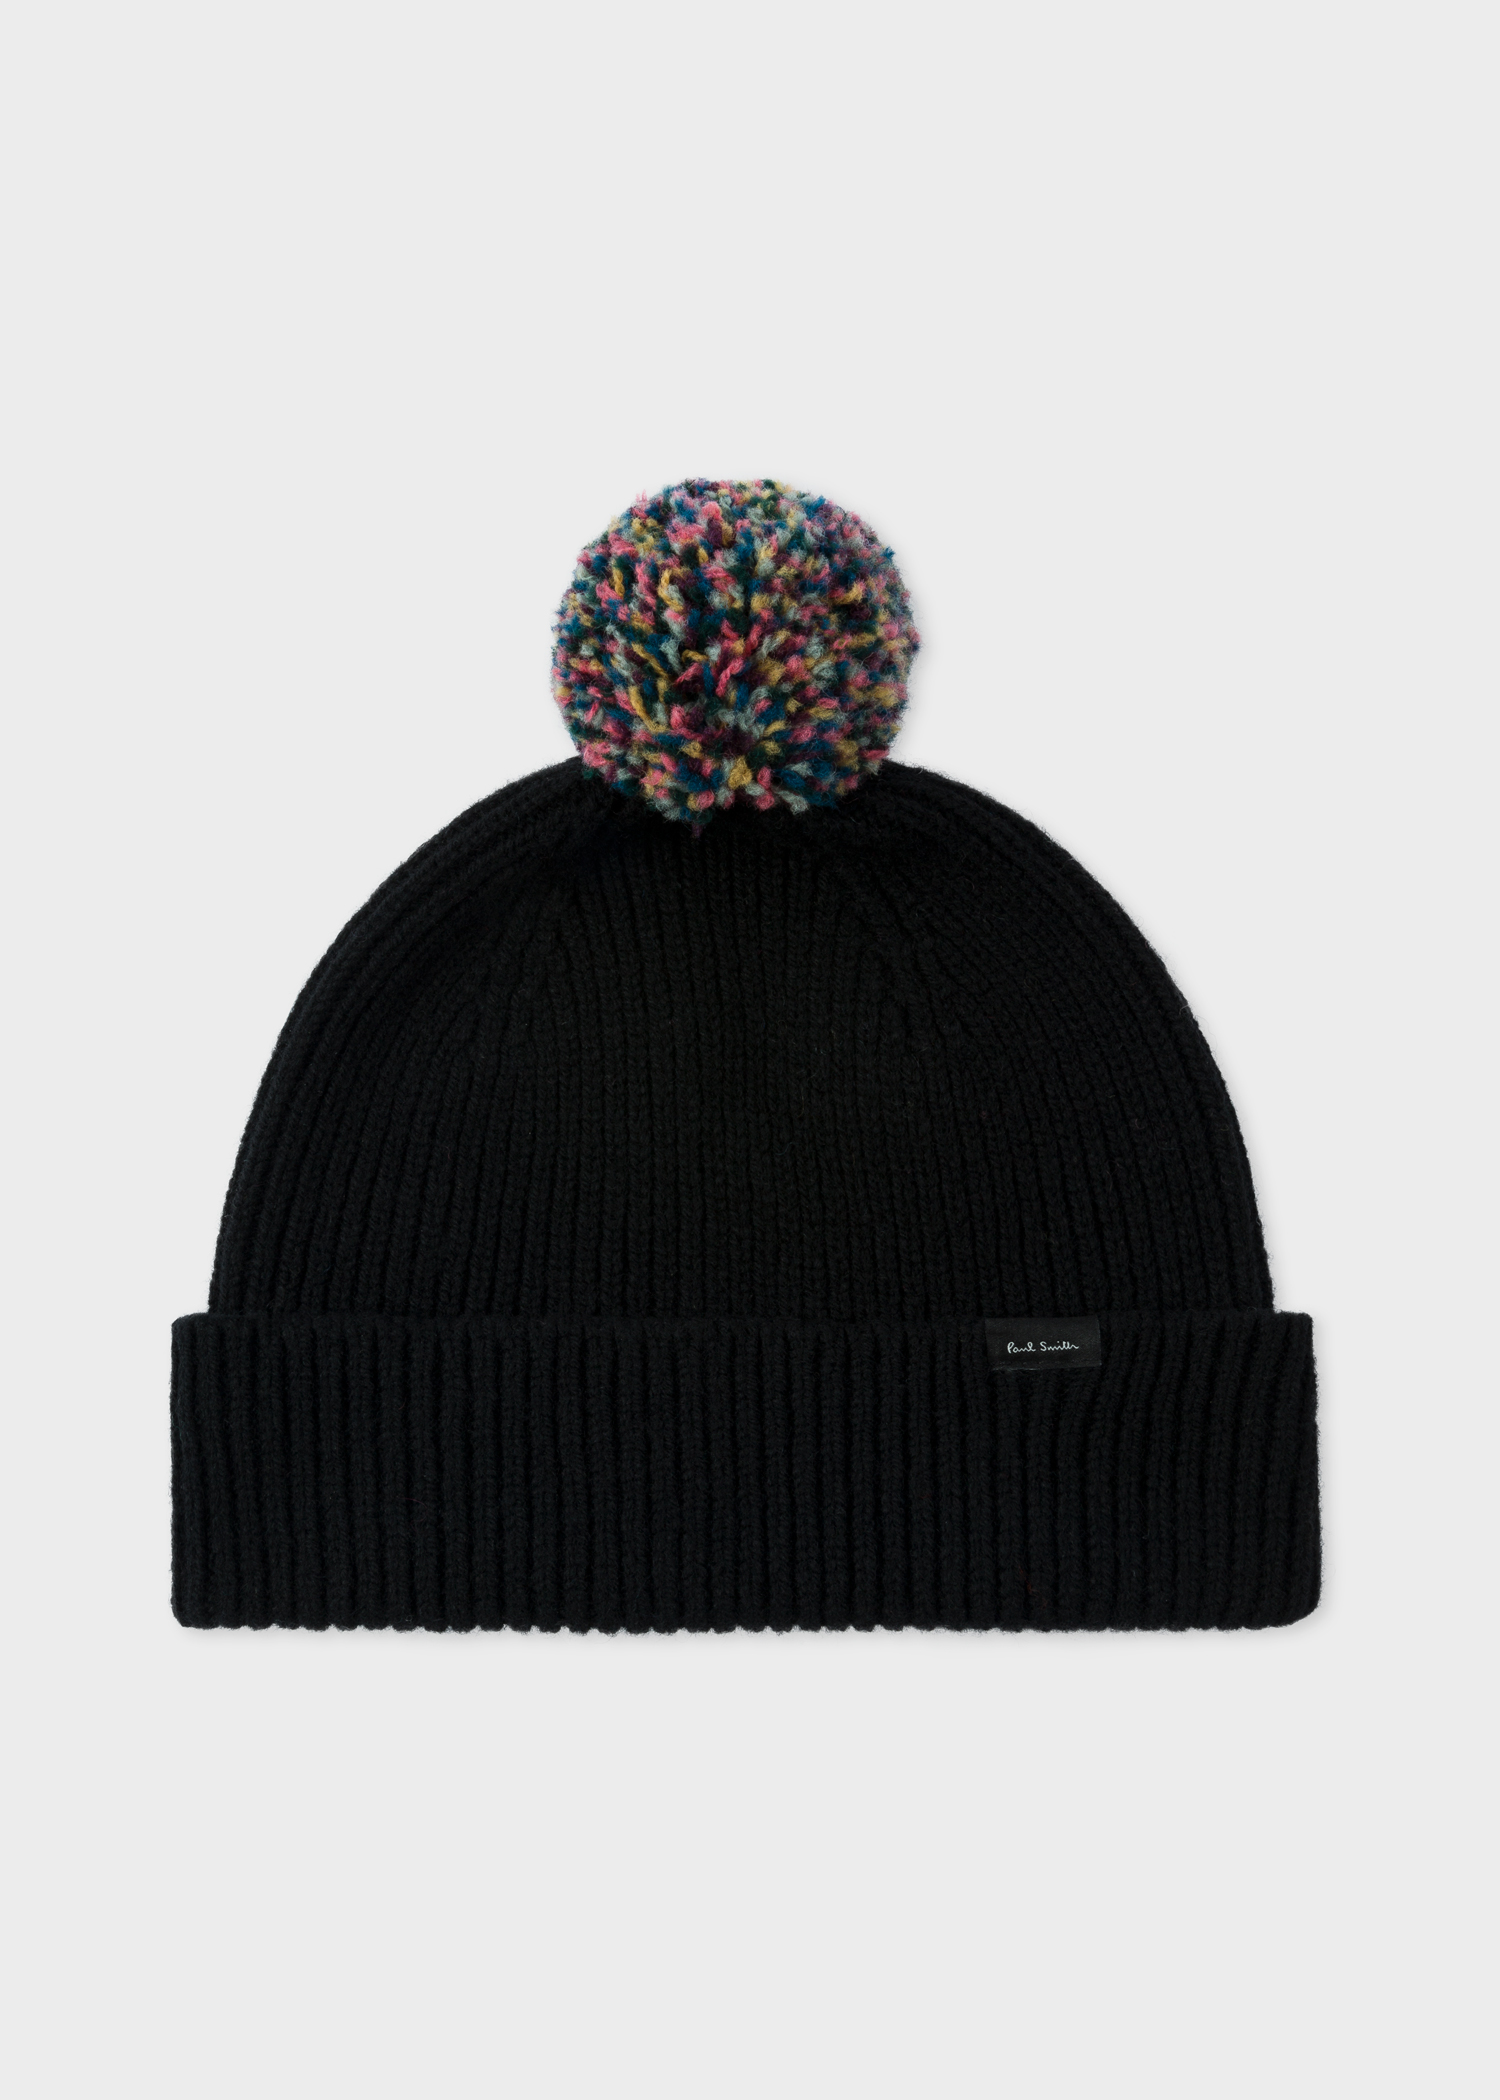 579d1205ec0 Front View - Men s Black Pom-Pom Wool Beanie Hat Paul Smith